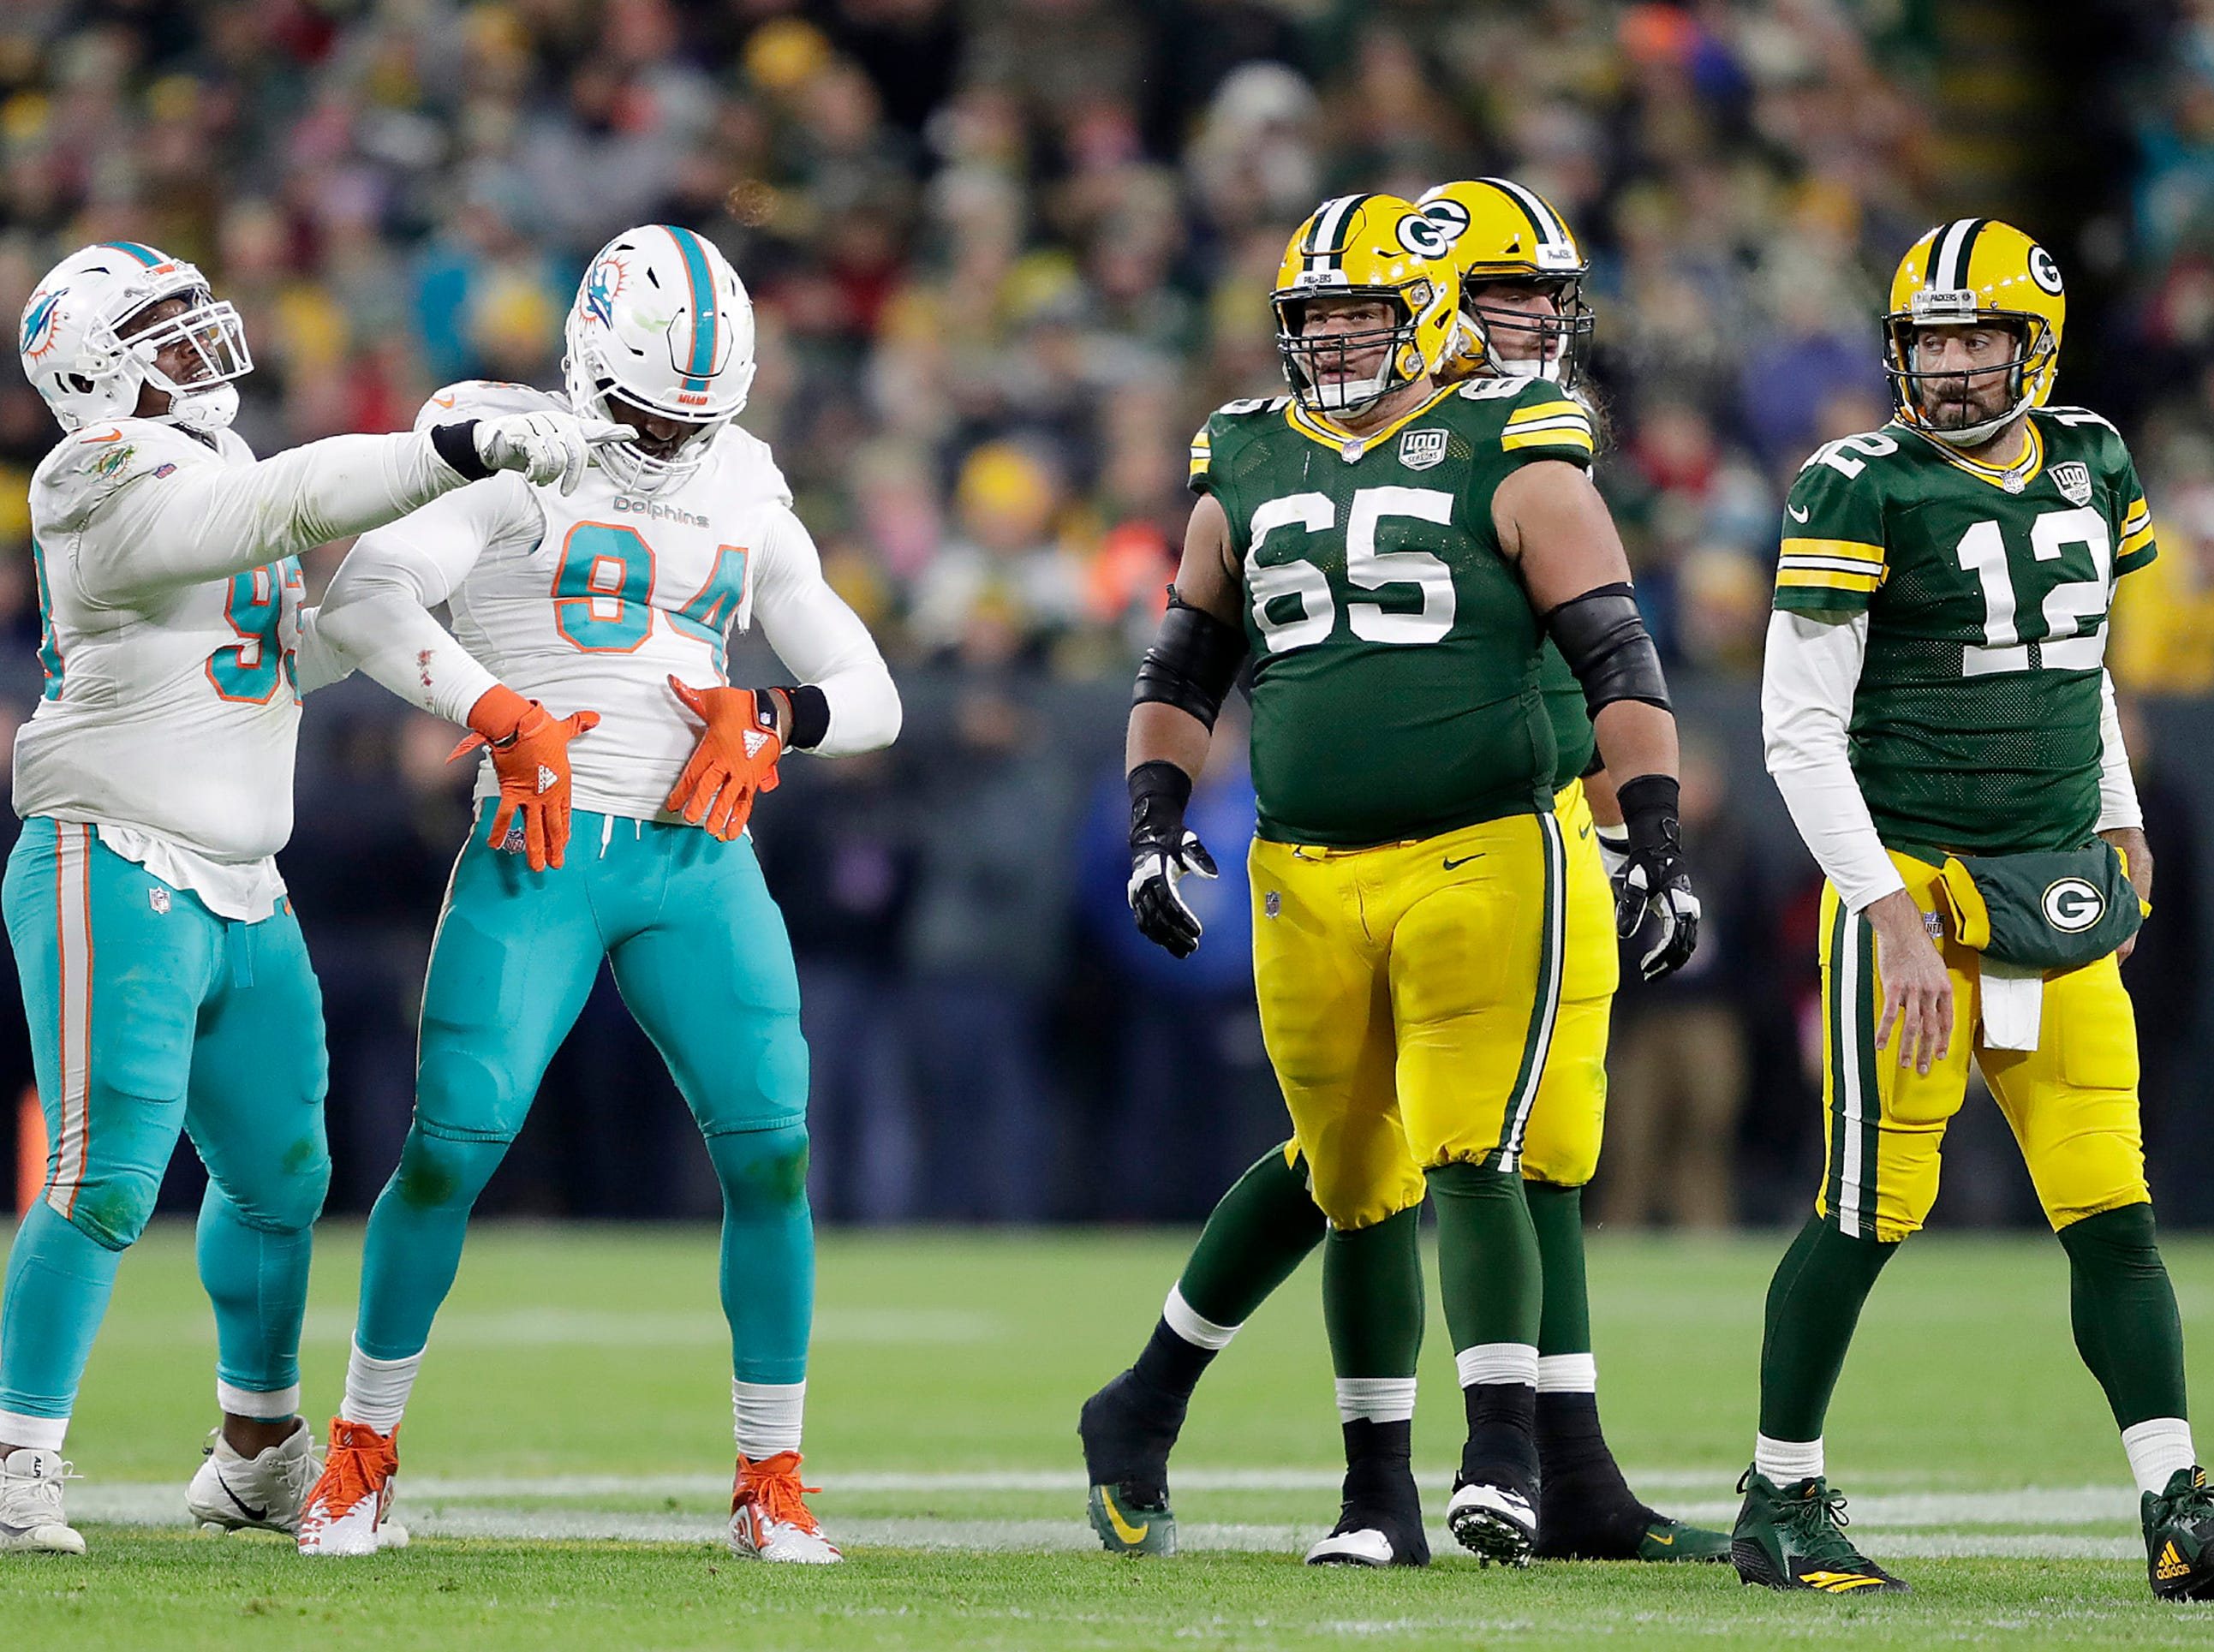 Miami Dolphins defensive end Robert Quinn celebrates after sacking Green Bay Packers quarterback Aaron Rodgersduring their football game on Sunday, November 11, 2018, at Lambeau Field in Green Bay, Wis.